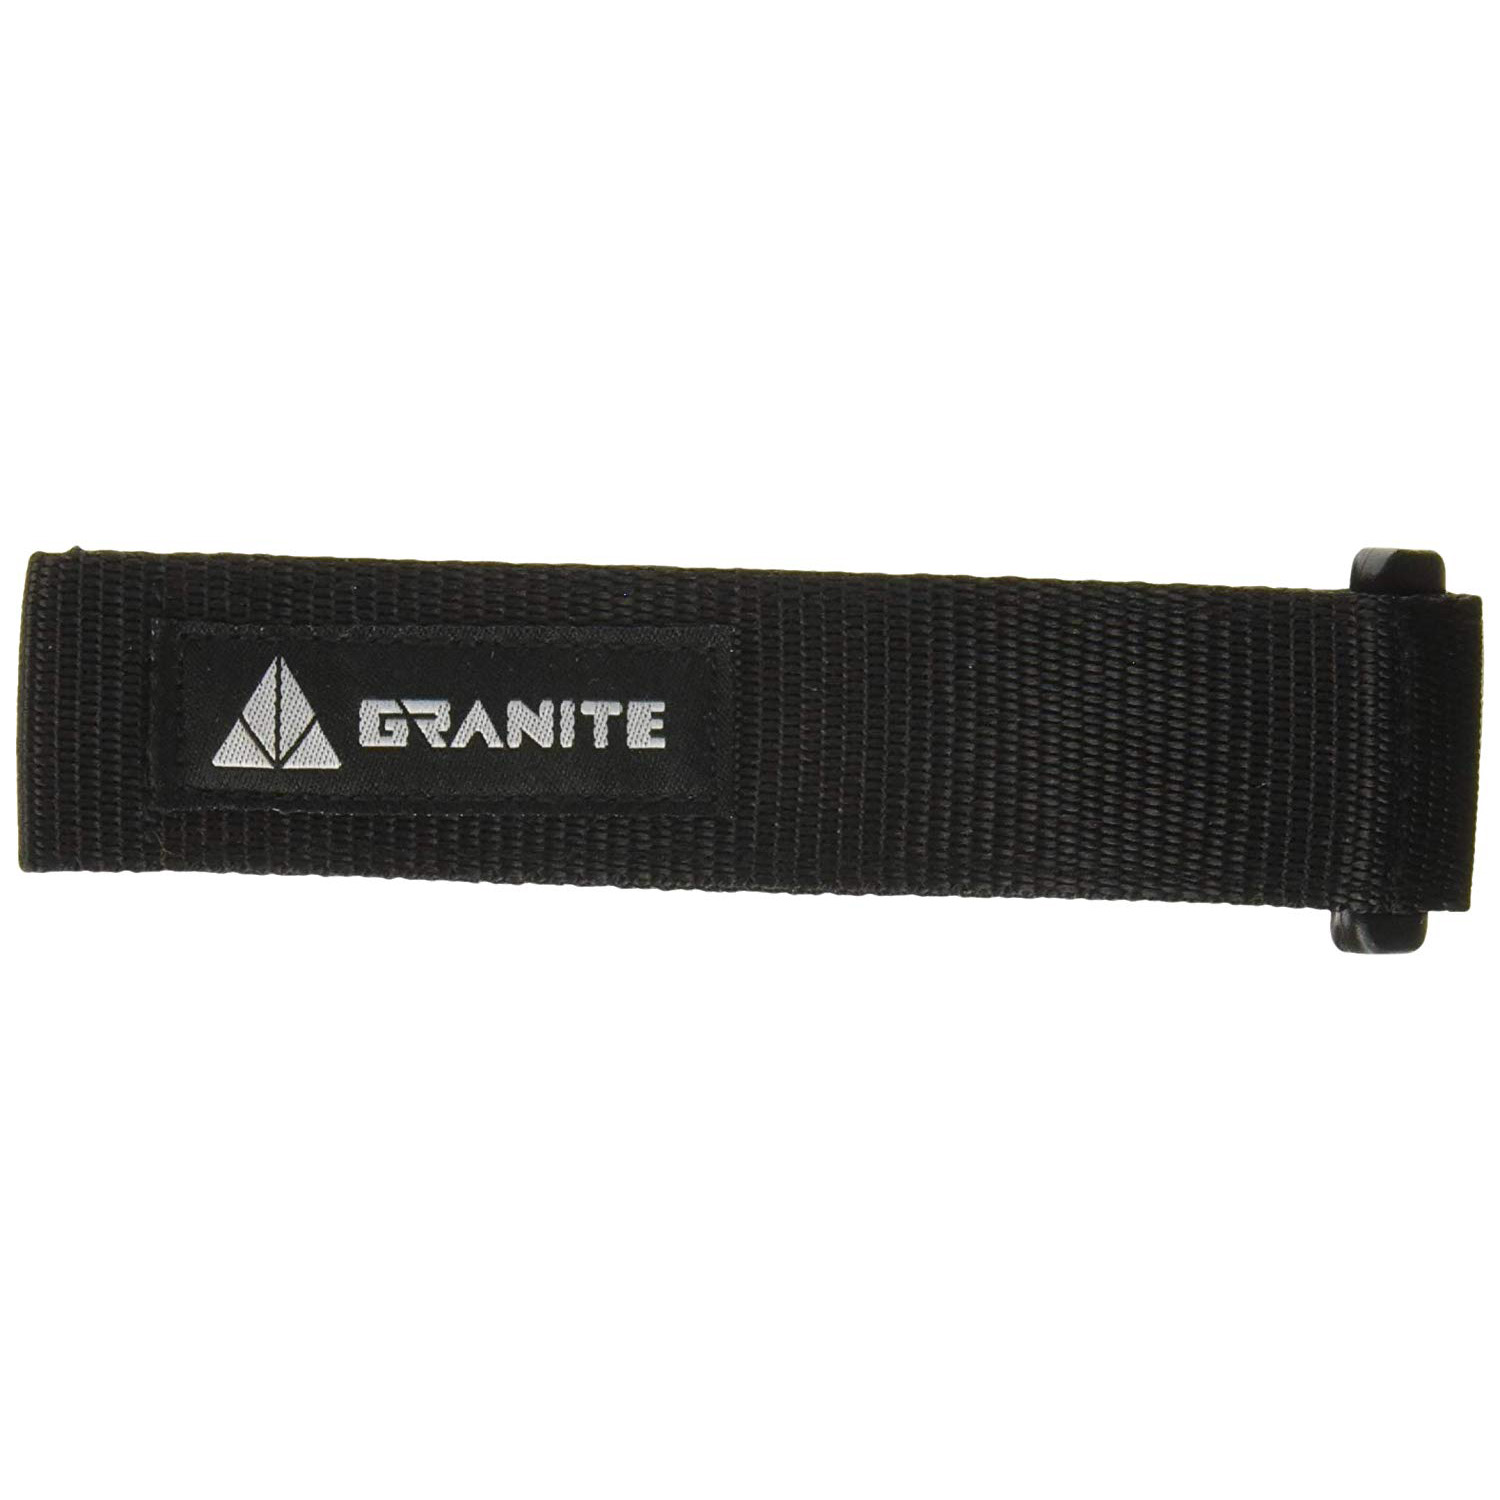 Granite Design Rockband Carrier Strap Black